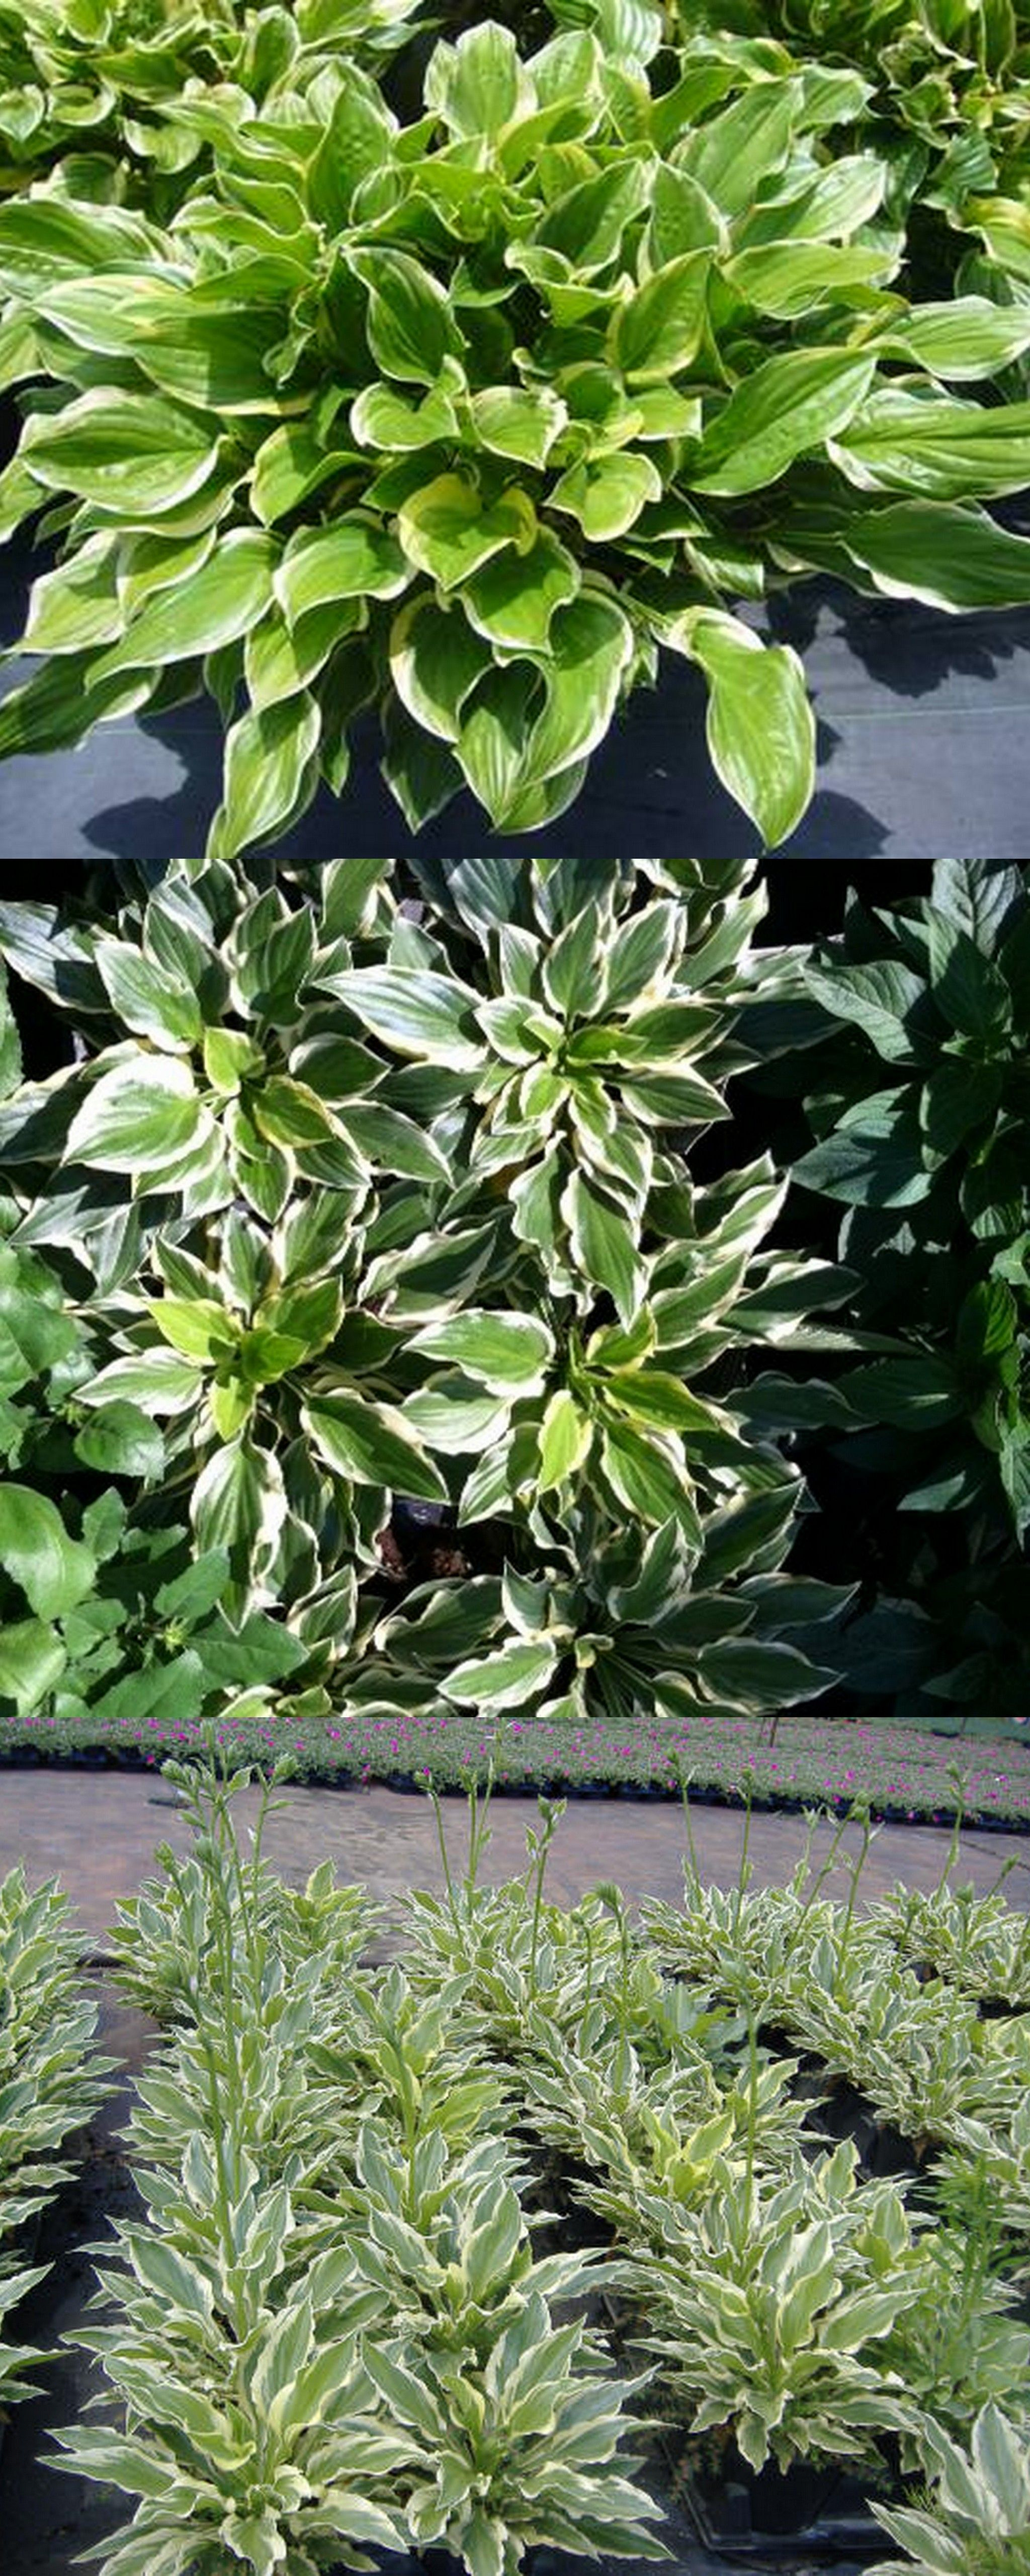 Sunhosta A Hosta That Can Take The Heat Of Florida And Is